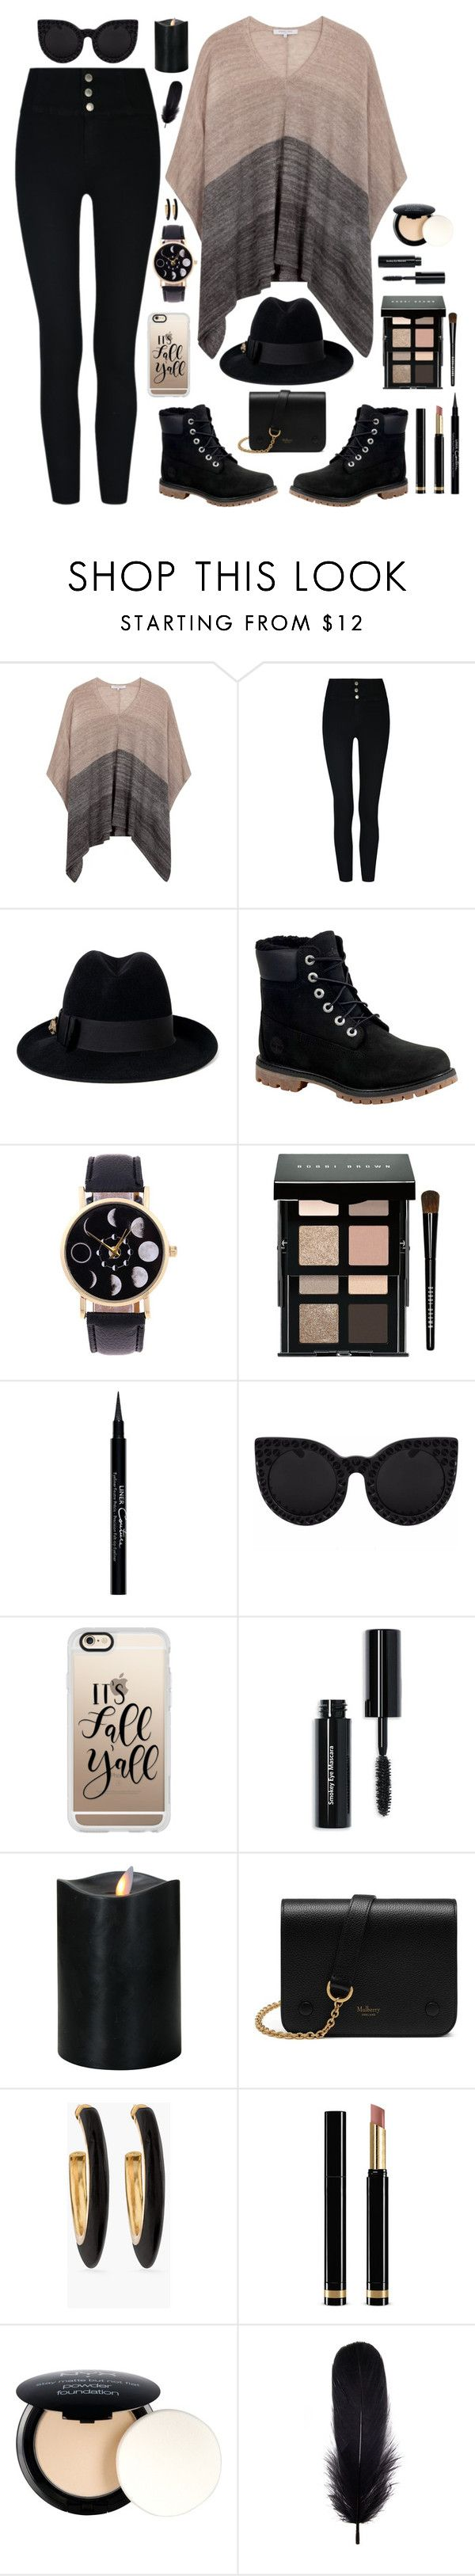 """""""Untitled #849"""" by alissar13 ❤ liked on Polyvore featuring Gérard Darel, Gucci, Timberland, Bobbi Brown Cosmetics, Givenchy, Delalle, Casetify, Mulberry, Chico's and NYX"""